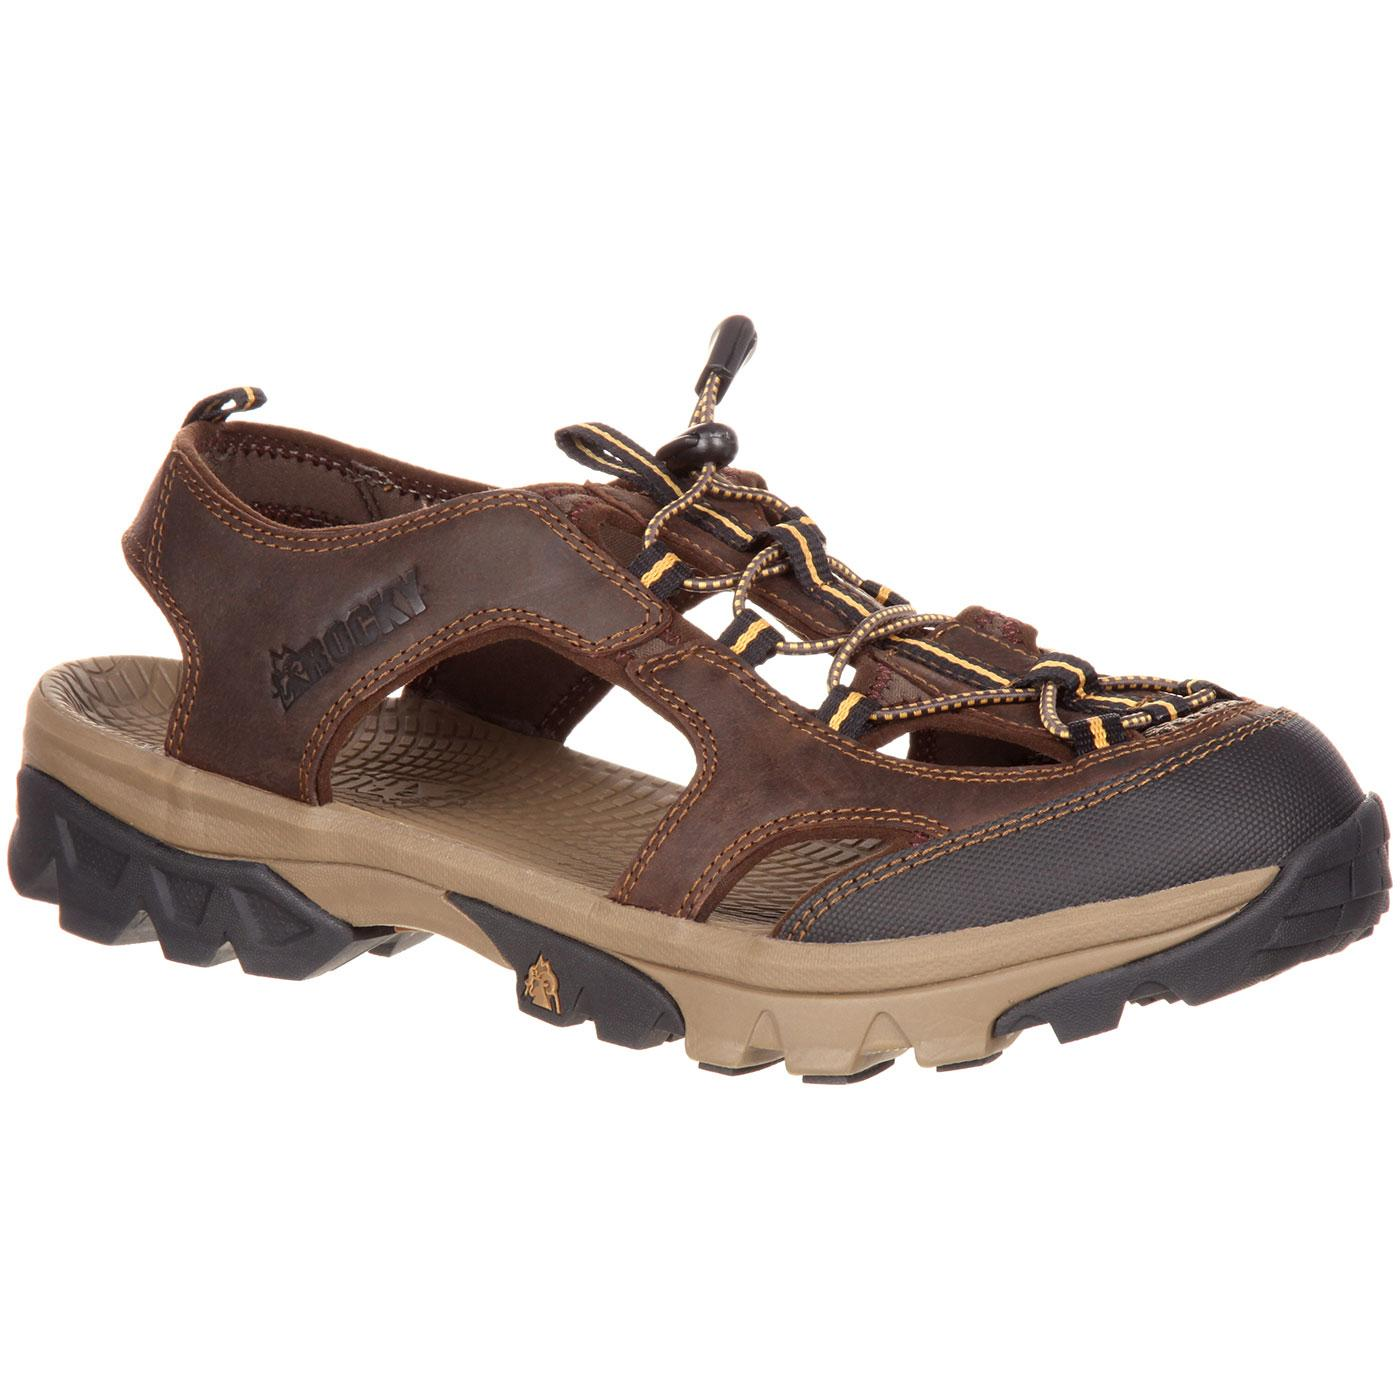 Rocky Endeavor Point Hiking Sandal Weight  1.5 pounds per pair for a size 10